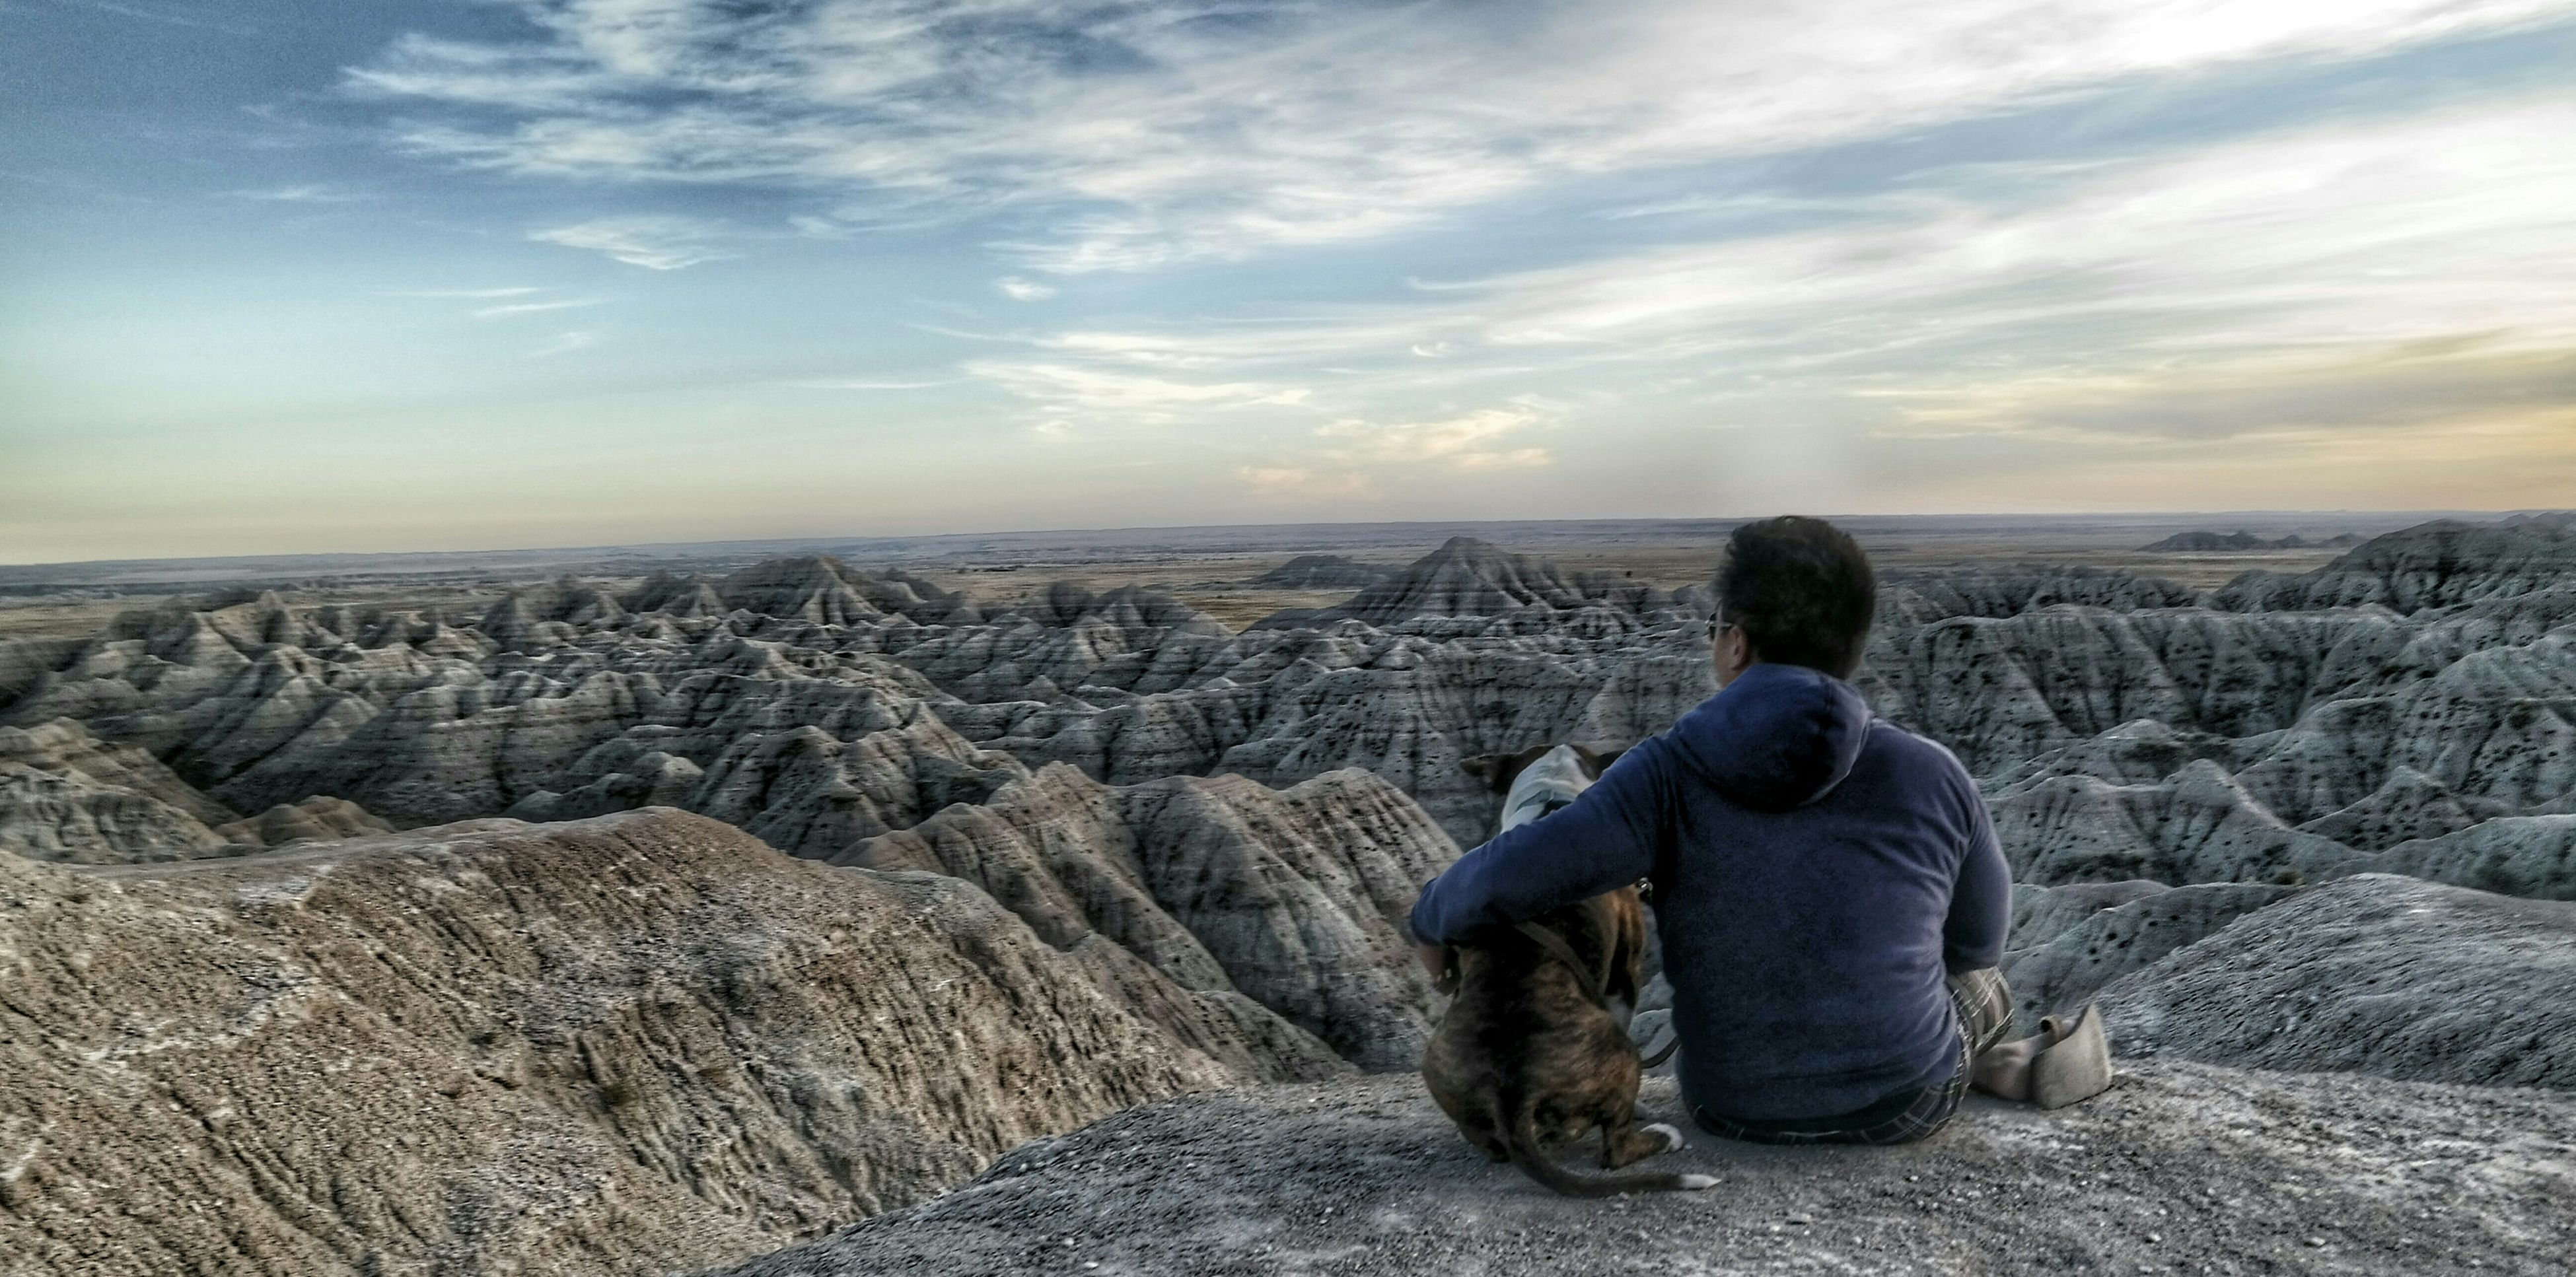 sky, men, lifestyles, rear view, leisure activity, rock - object, cloud - sky, sitting, togetherness, looking at view, scenics, person, nature, tranquility, full length, beauty in nature, landscape, tranquil scene